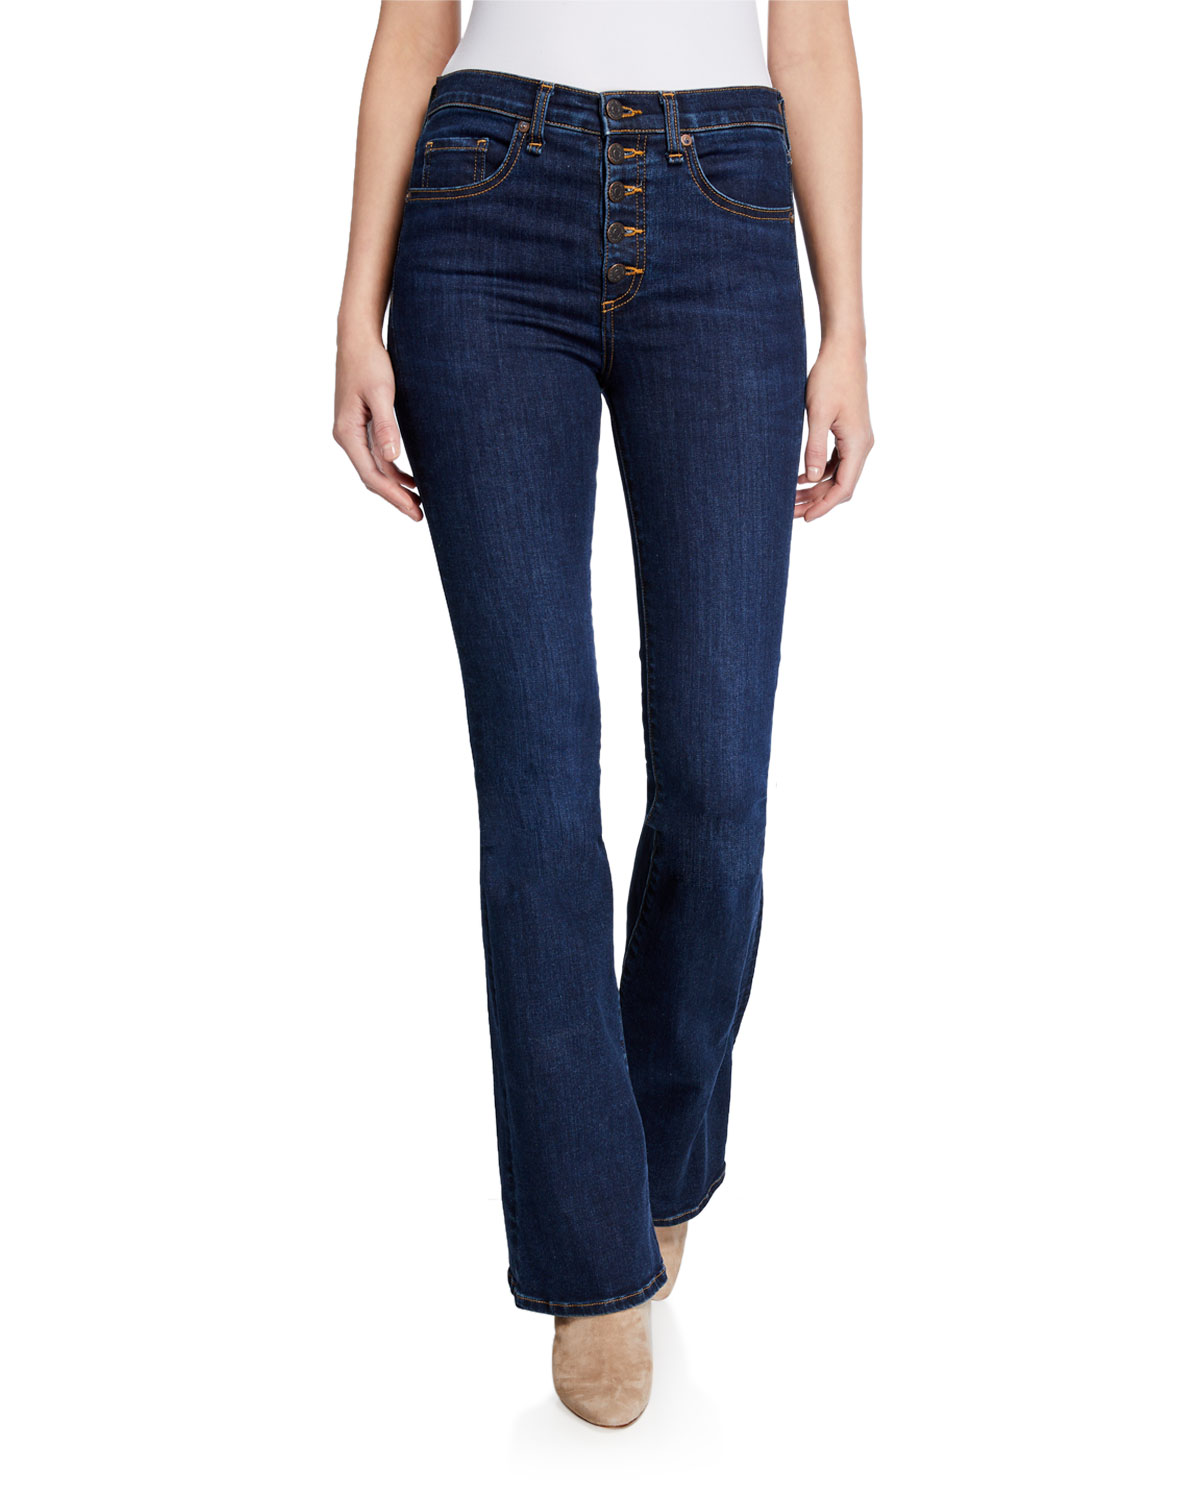 Veronica Beard Jeans Beverly High-Rise Flare Jeans with Exposed Fly